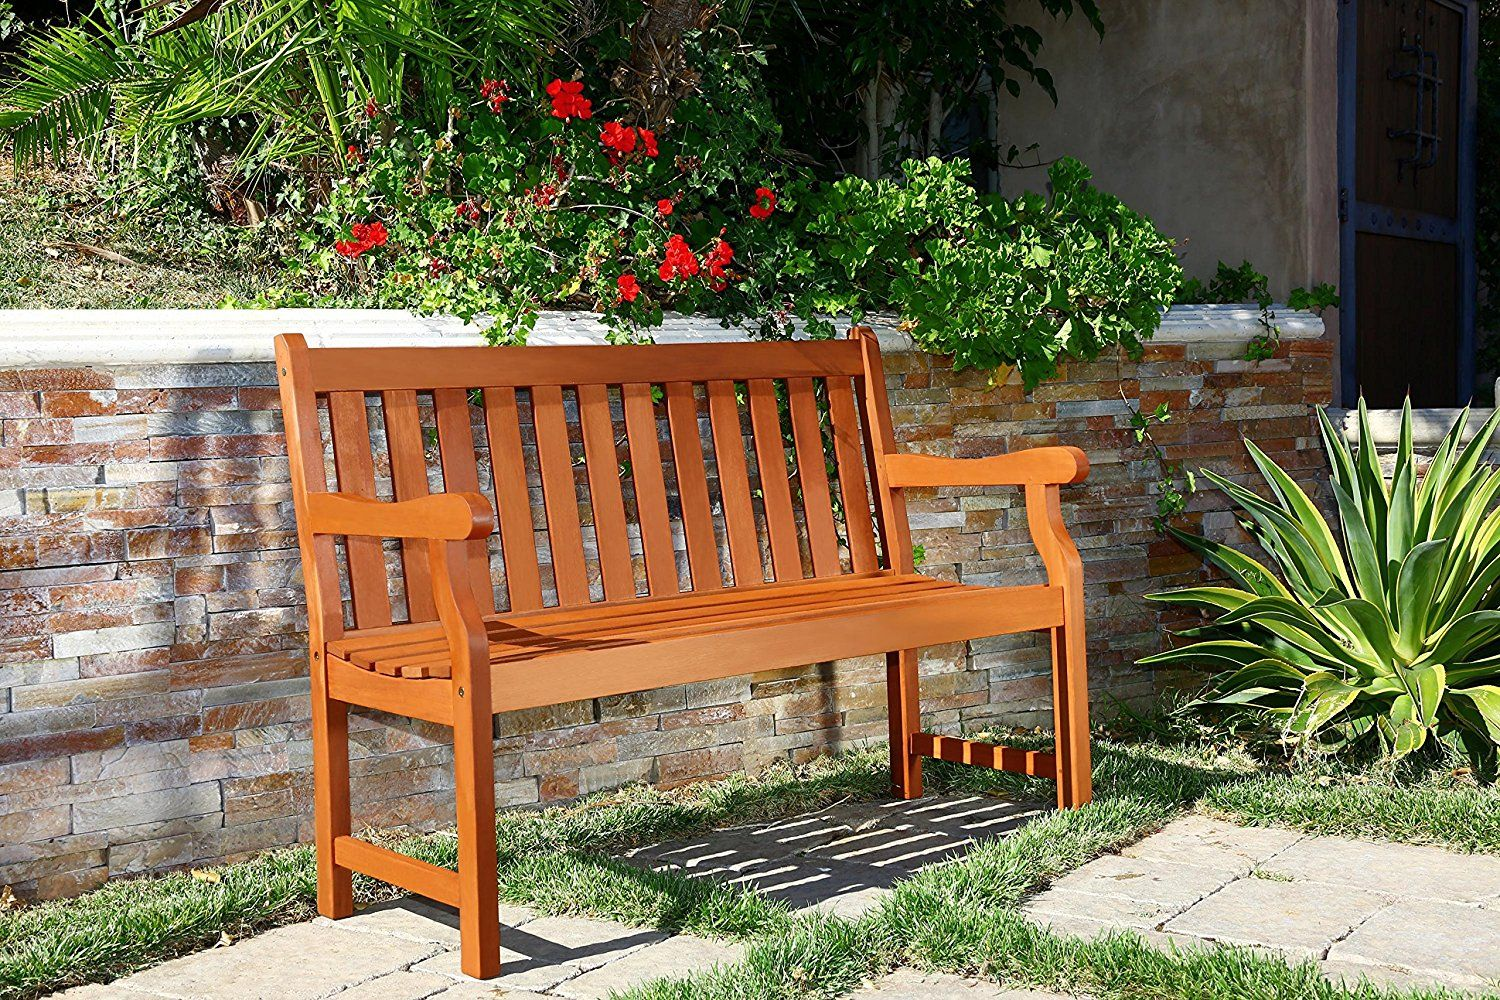 Built Sturdily Yet Eloquently This 2 Person Bench Will Fit Any